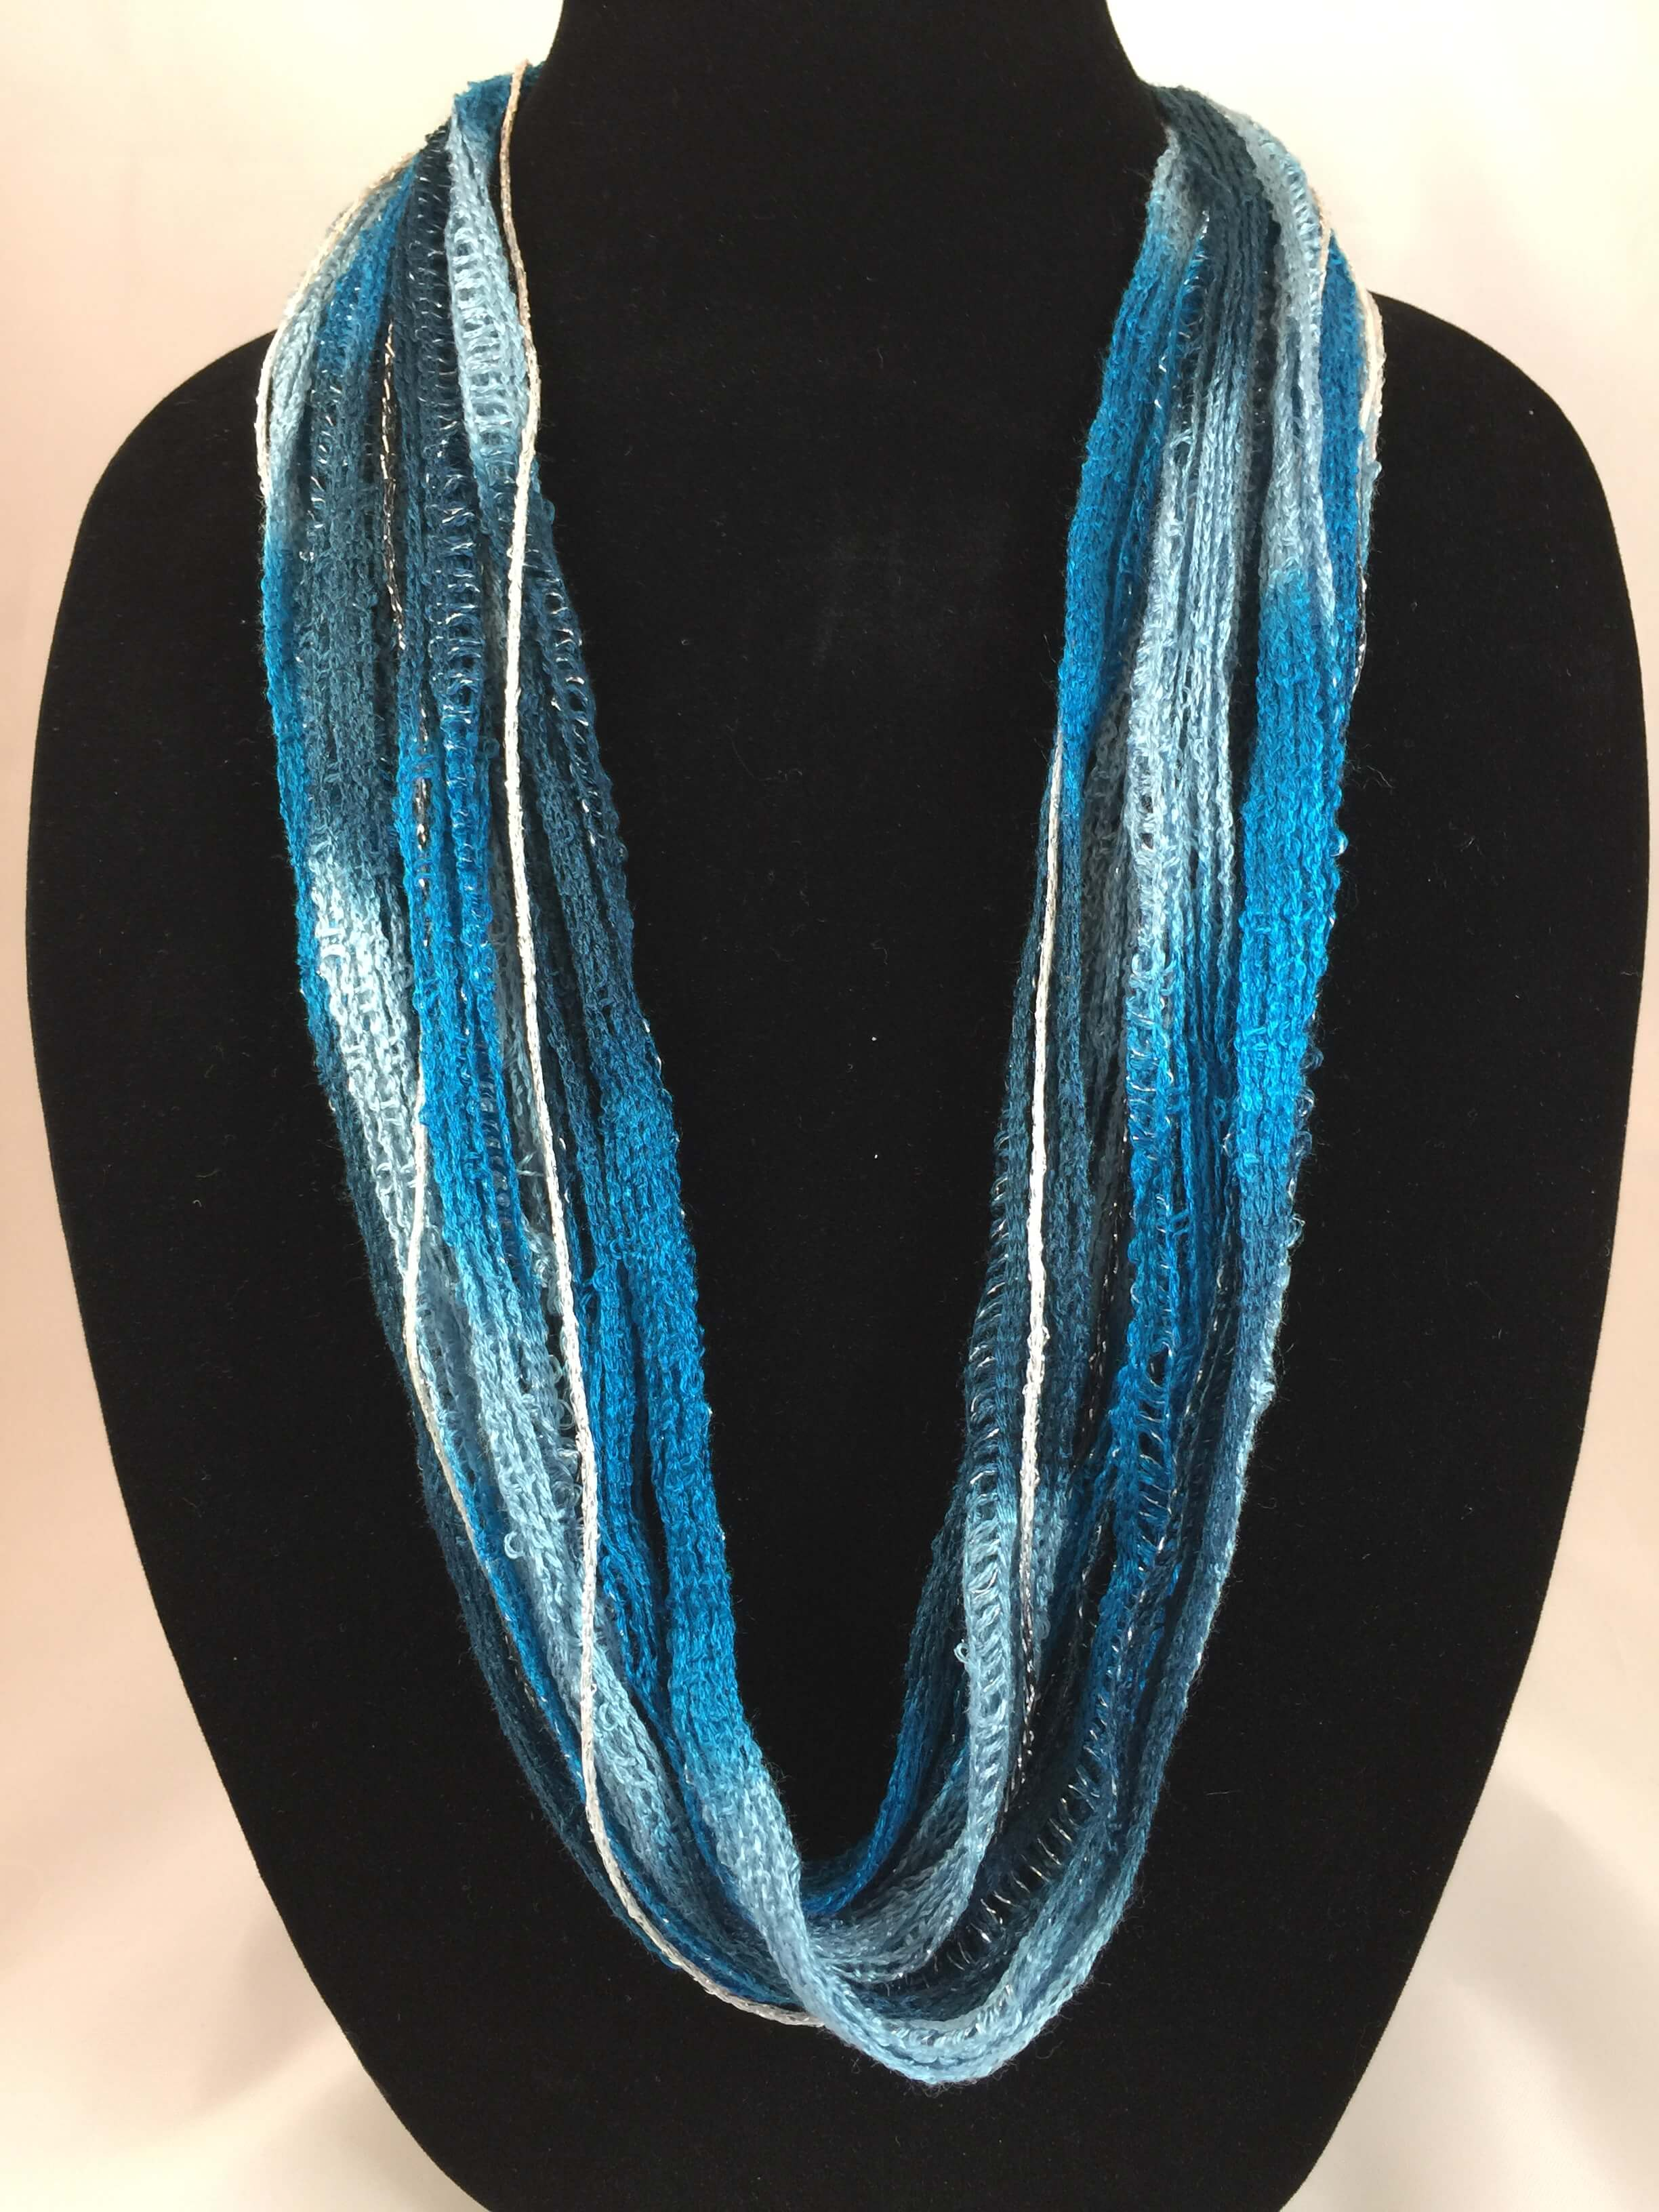 Indigo Blues | Plush | Fiber Necklace